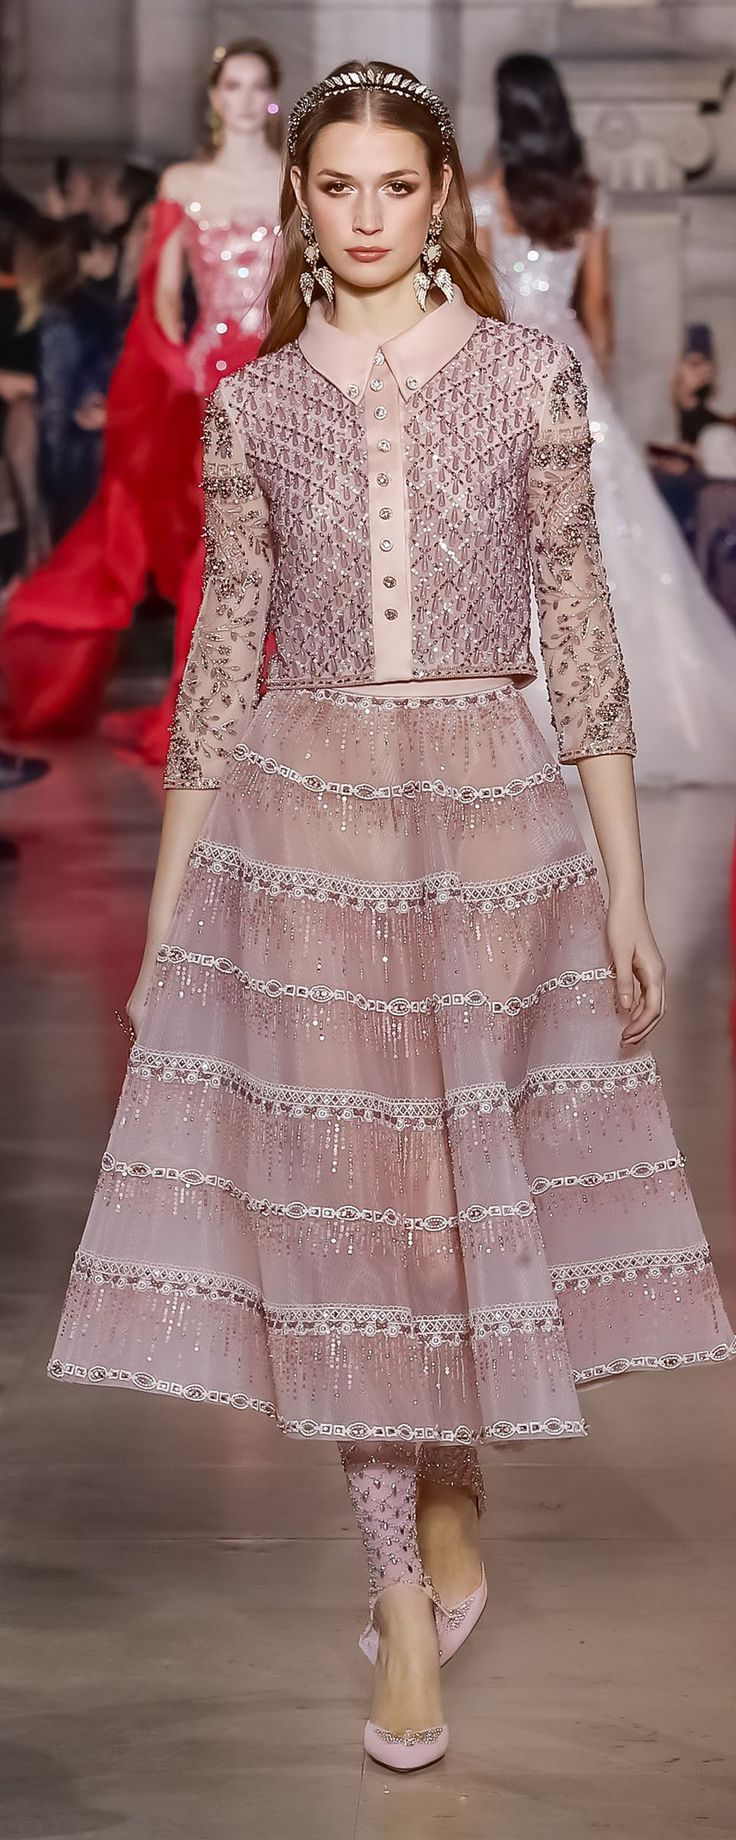 Georges Hobeika S/S 2018, official pictures - Couture - http://www.orientpalms.com/Georges-Hobeika-7017